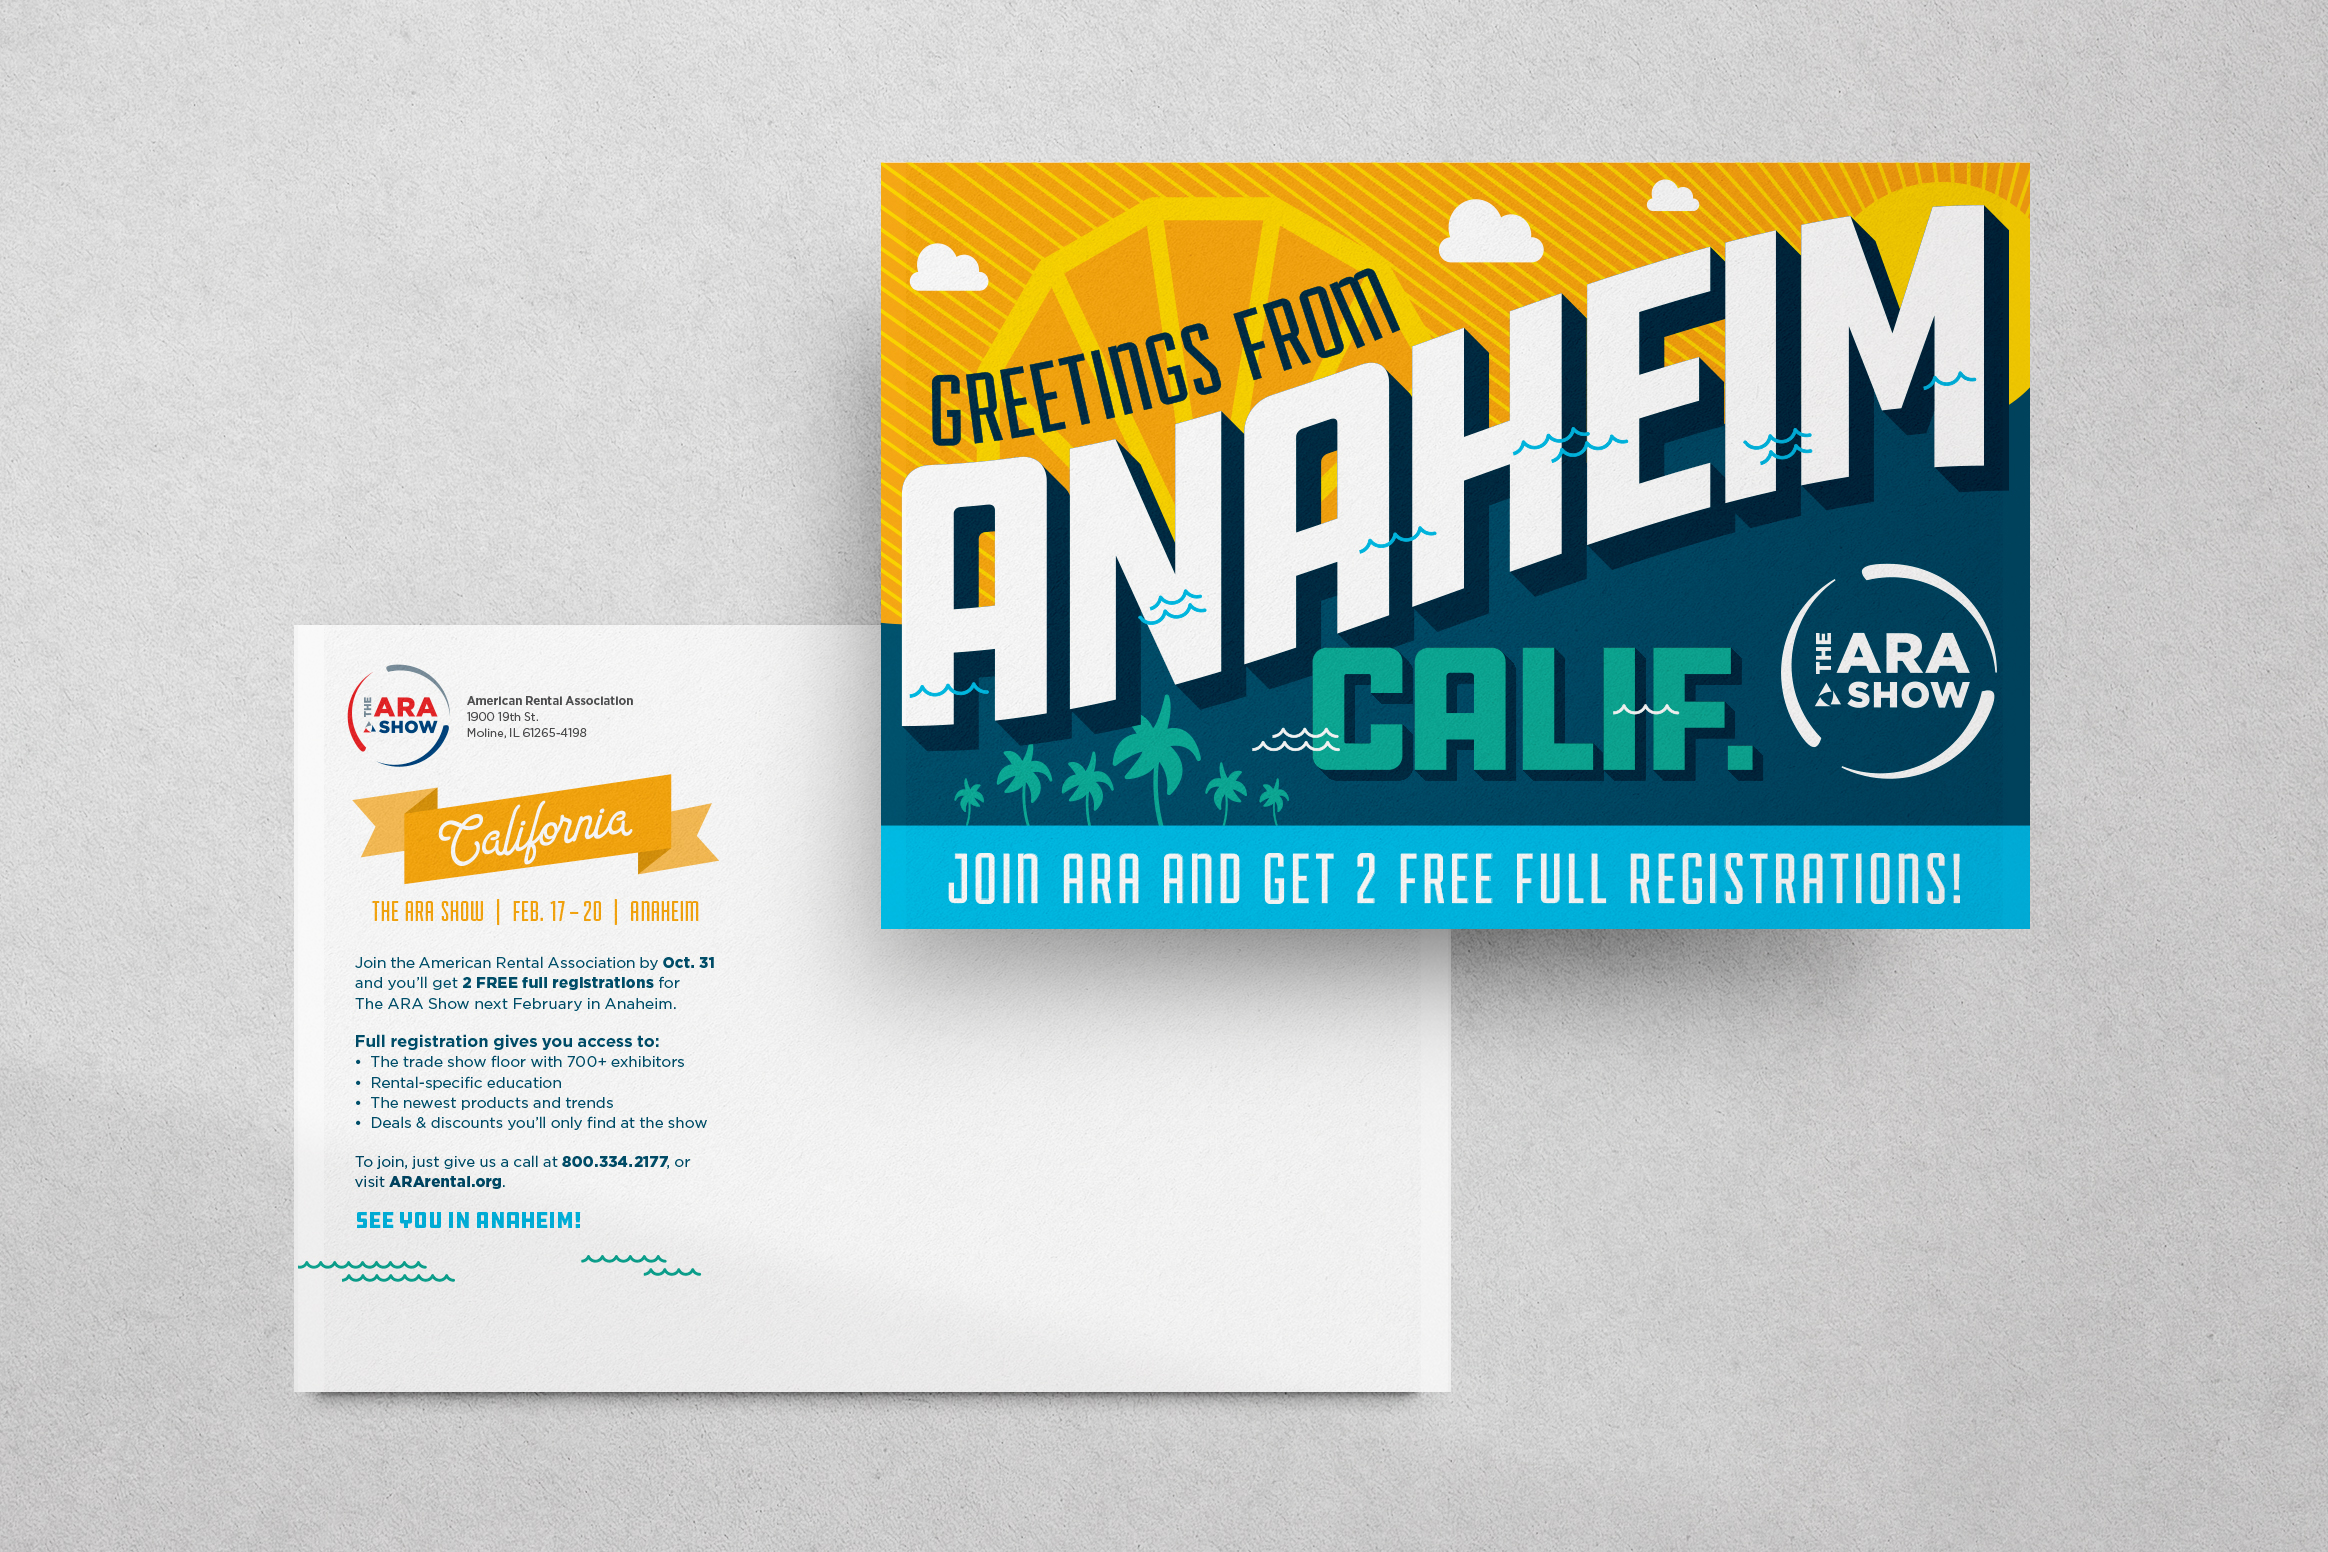 Two ARA Show postcards front and back  laying overlapped on a grey background.